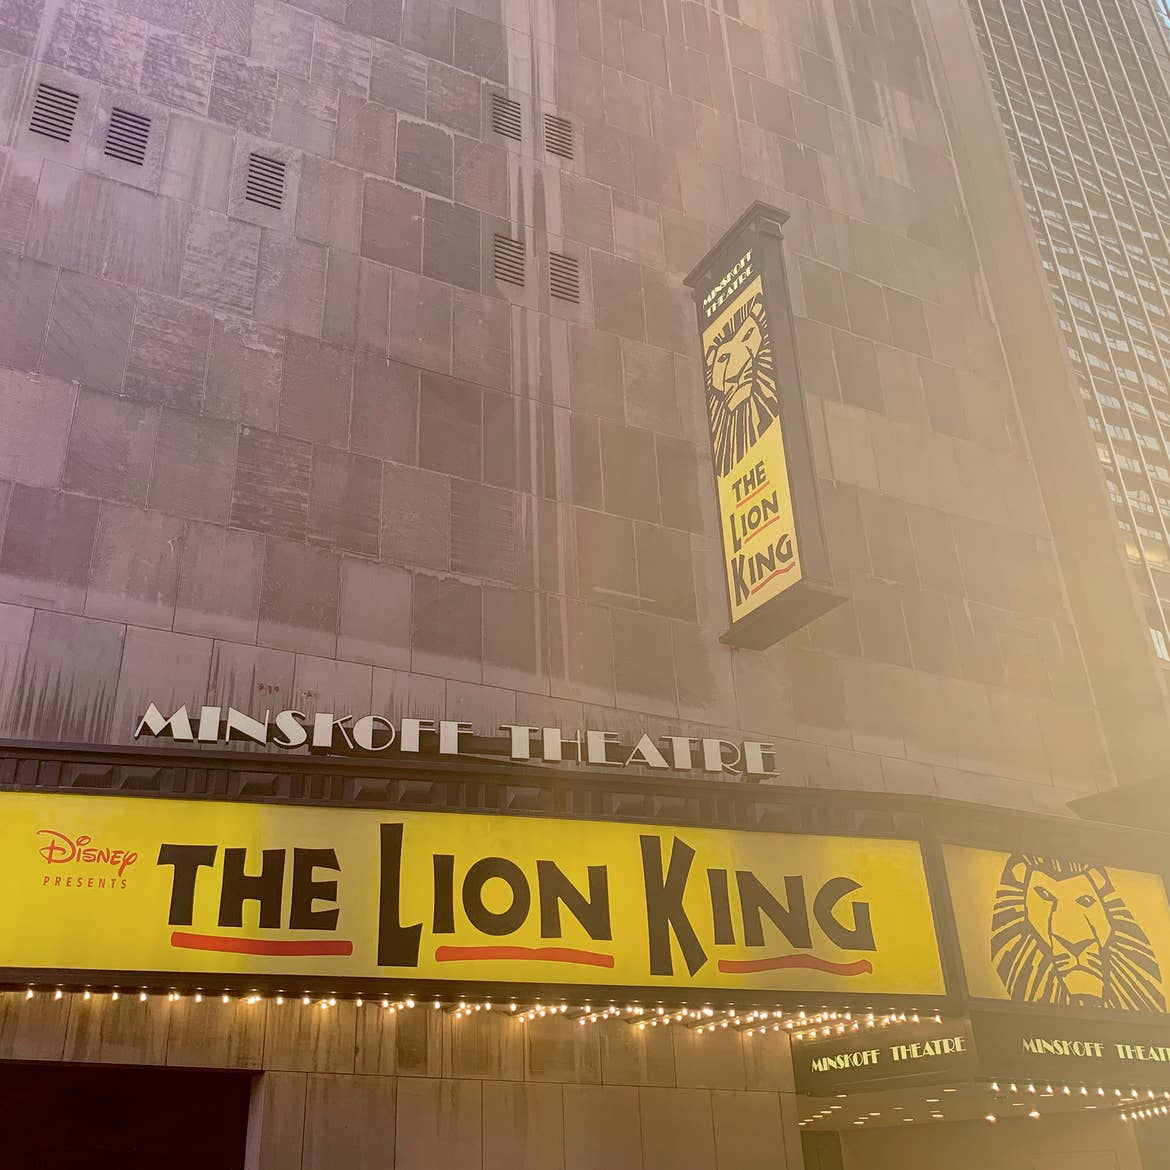 An exterior marquee at the Minskoff Theater for 'The Lion King' in New York City.